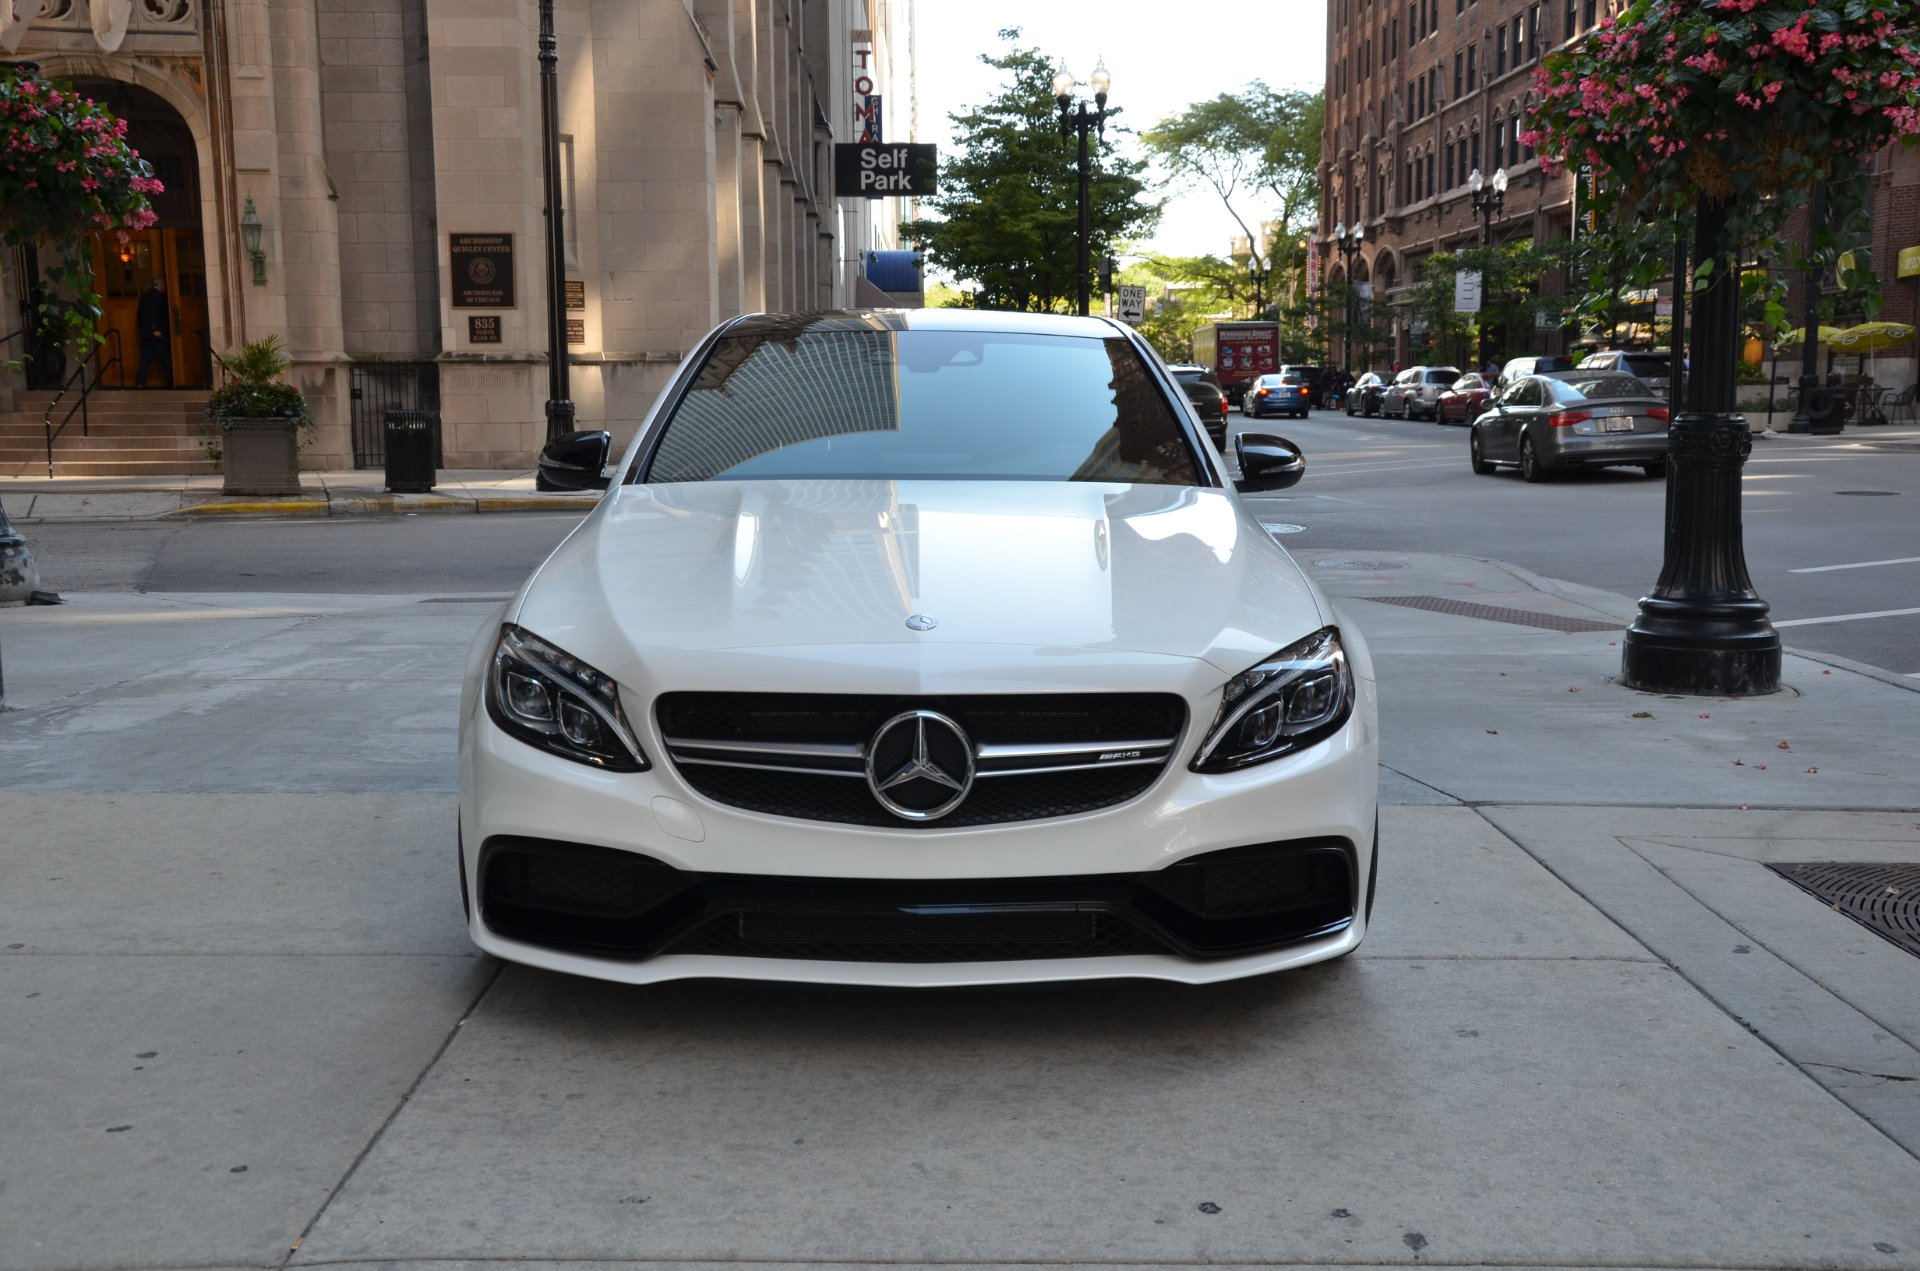 2015 mercedes benz c class c63 s amg stock gc charlie01 for sale near chicago il il. Black Bedroom Furniture Sets. Home Design Ideas